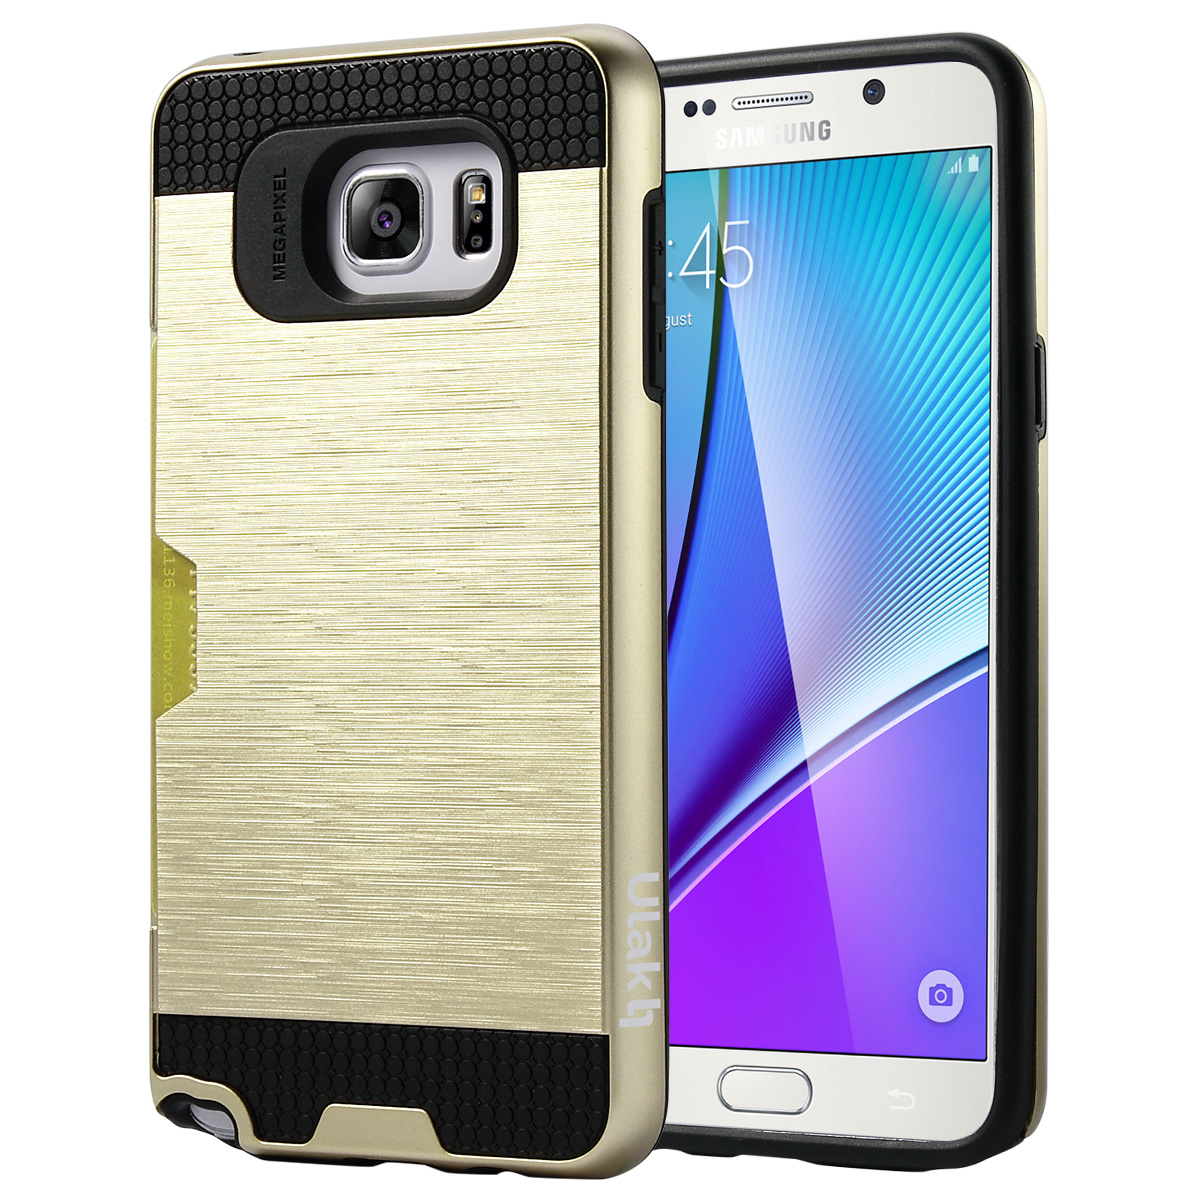 ULAK Note 5 Case Hybrid TPU and Plastic Protective Case Slim Fit Cover with Card Slot for Samsung Galaxy Note 5 2015 Smartphone(Gold/Black)